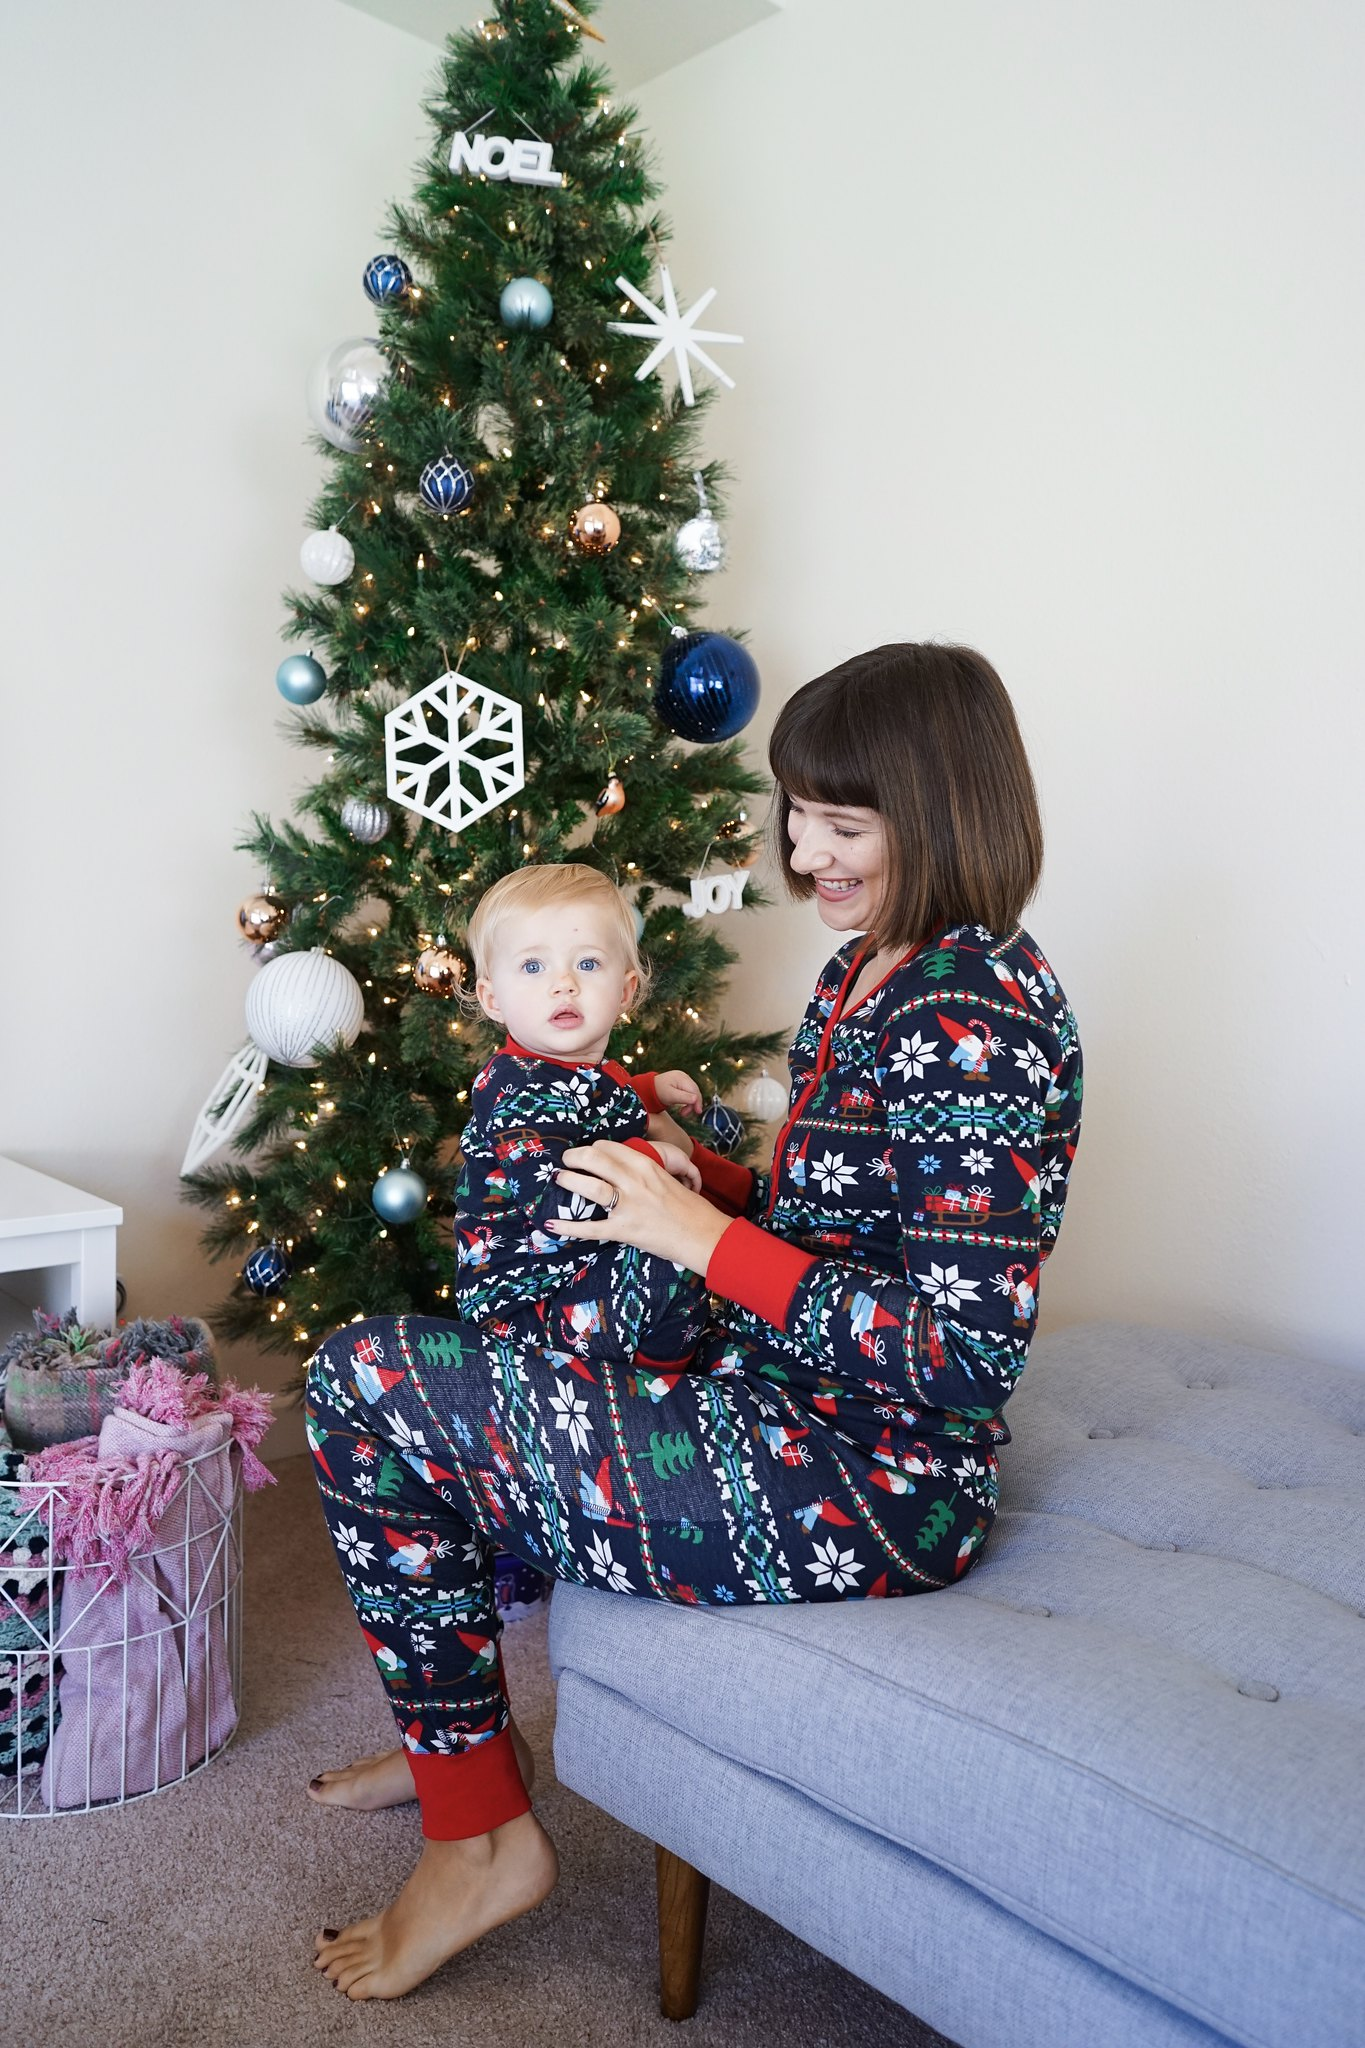 Hanna Andersson, Matching pjs, mommy and me style, Christmas traditions, mom life, mommy blog, fbloggers, hannajams